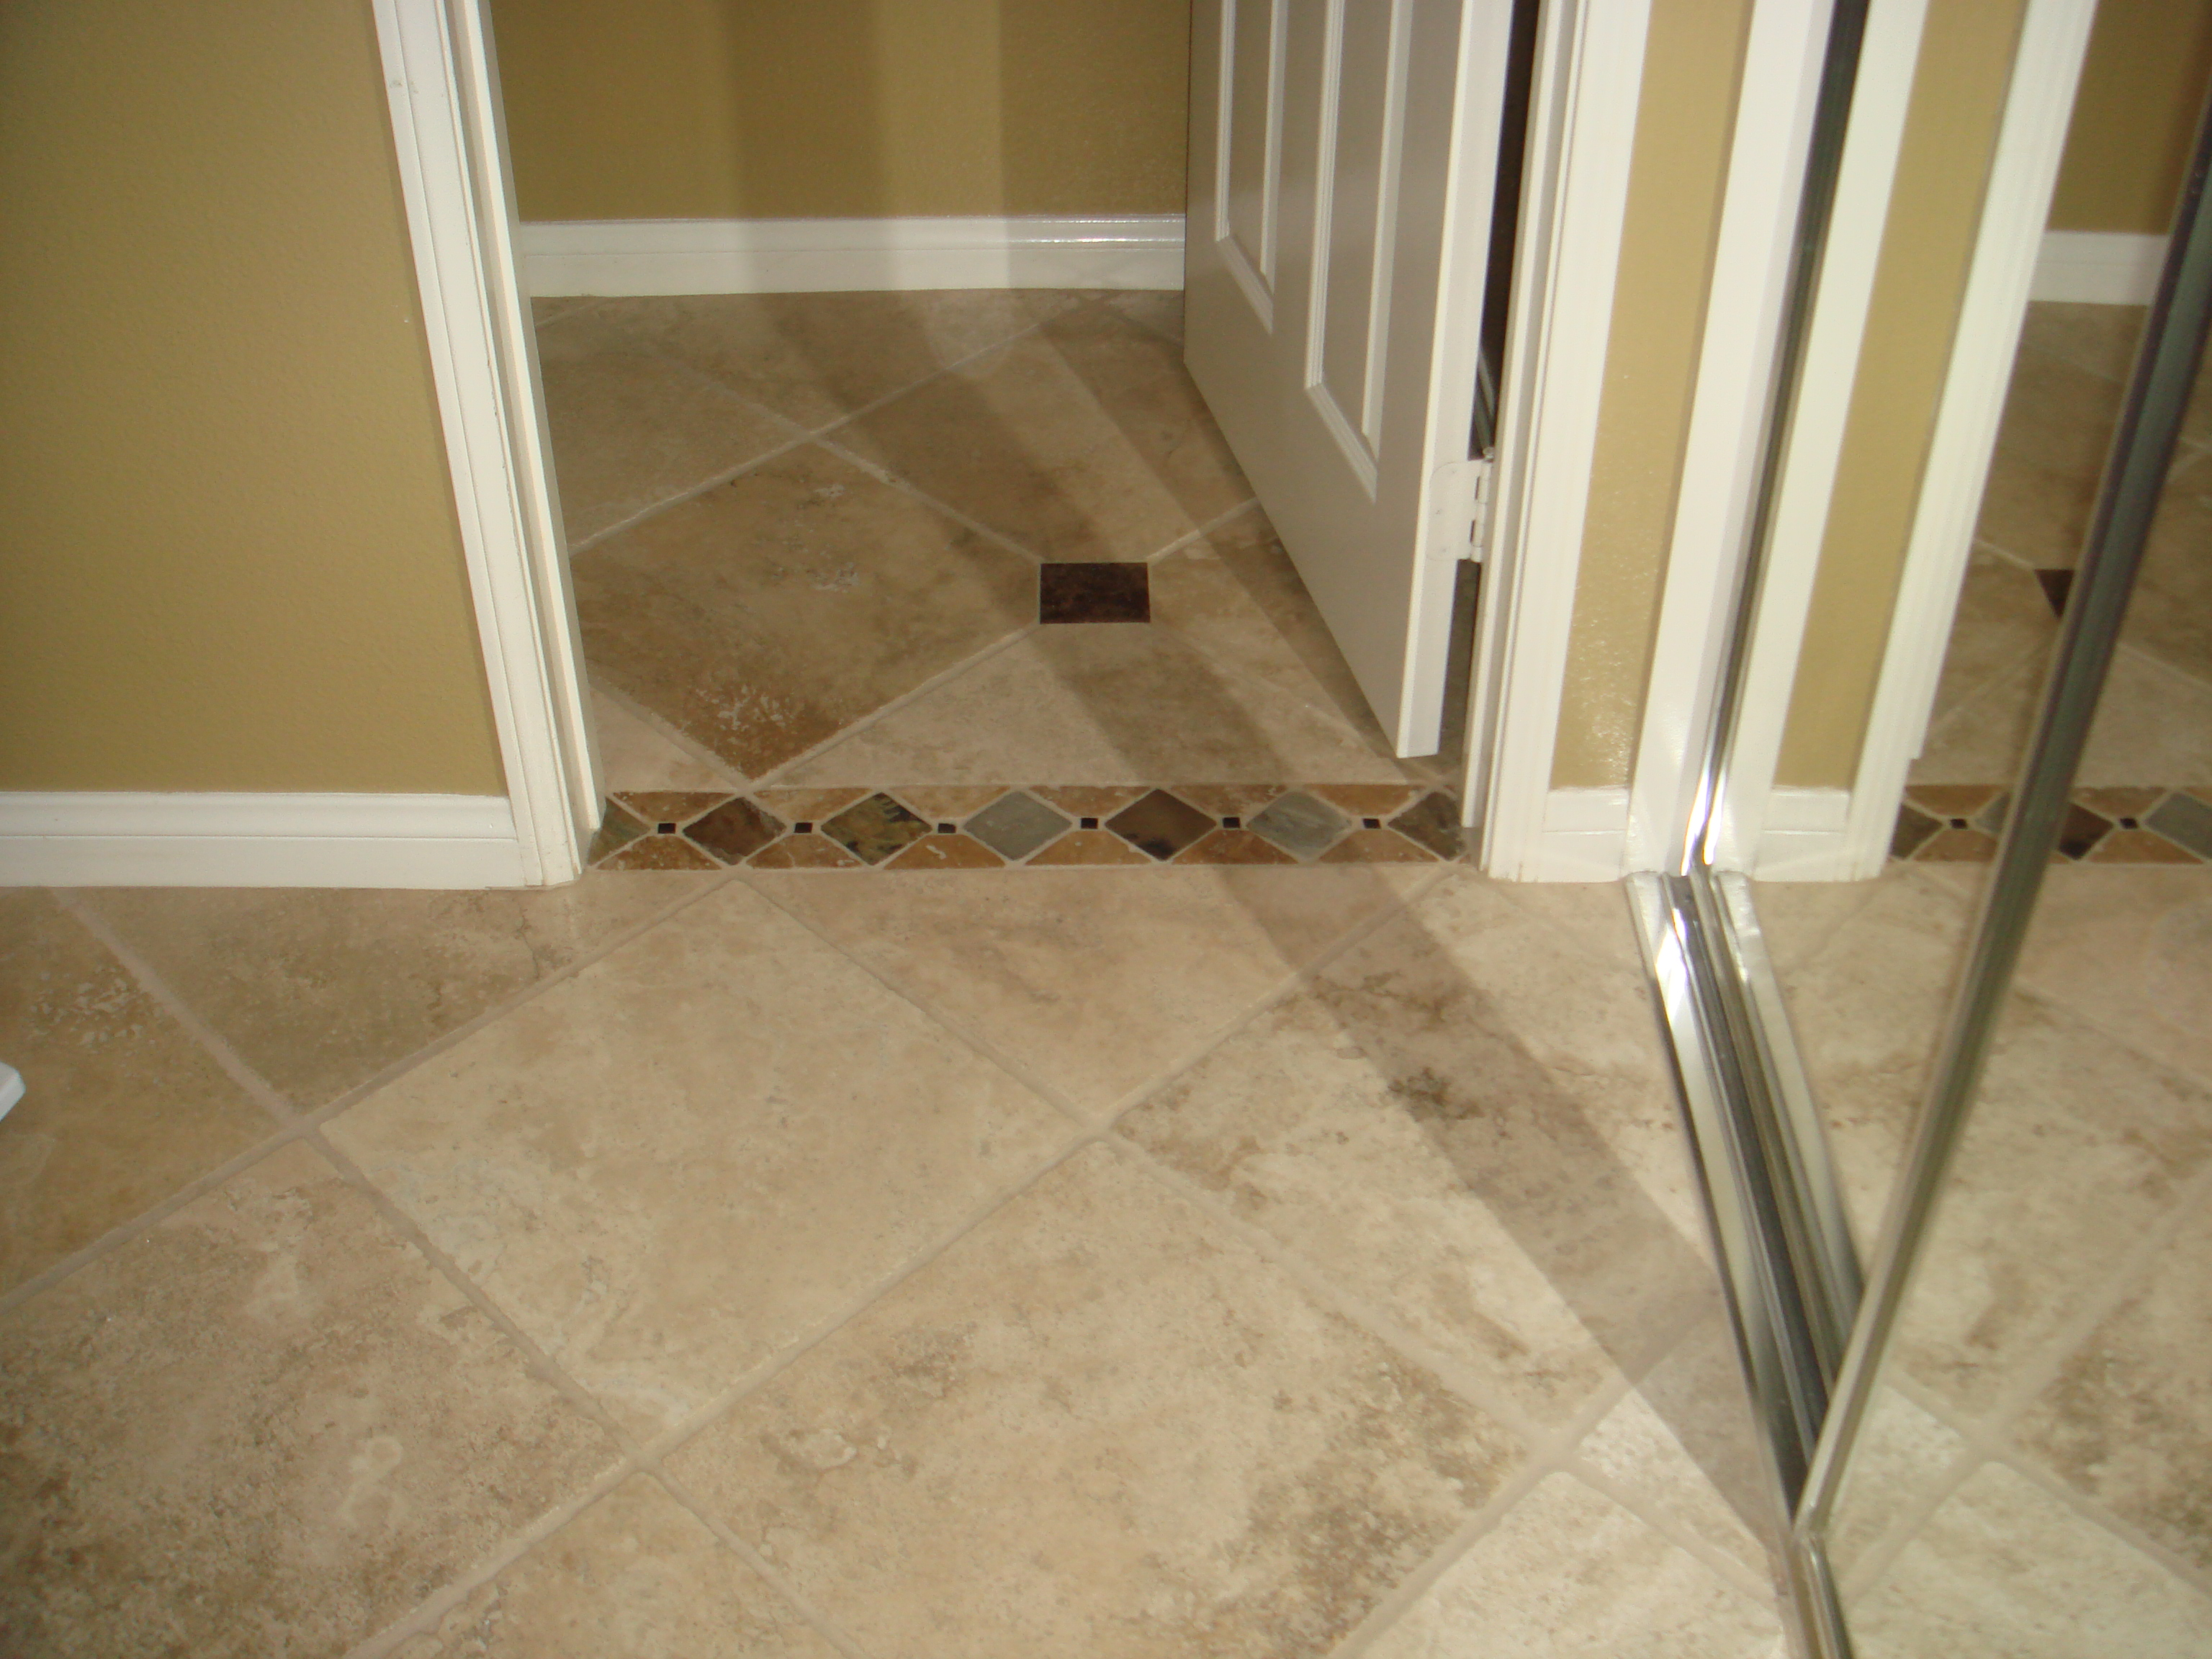 Bathroom laminate flooring for Installing laminate flooring in bathroom